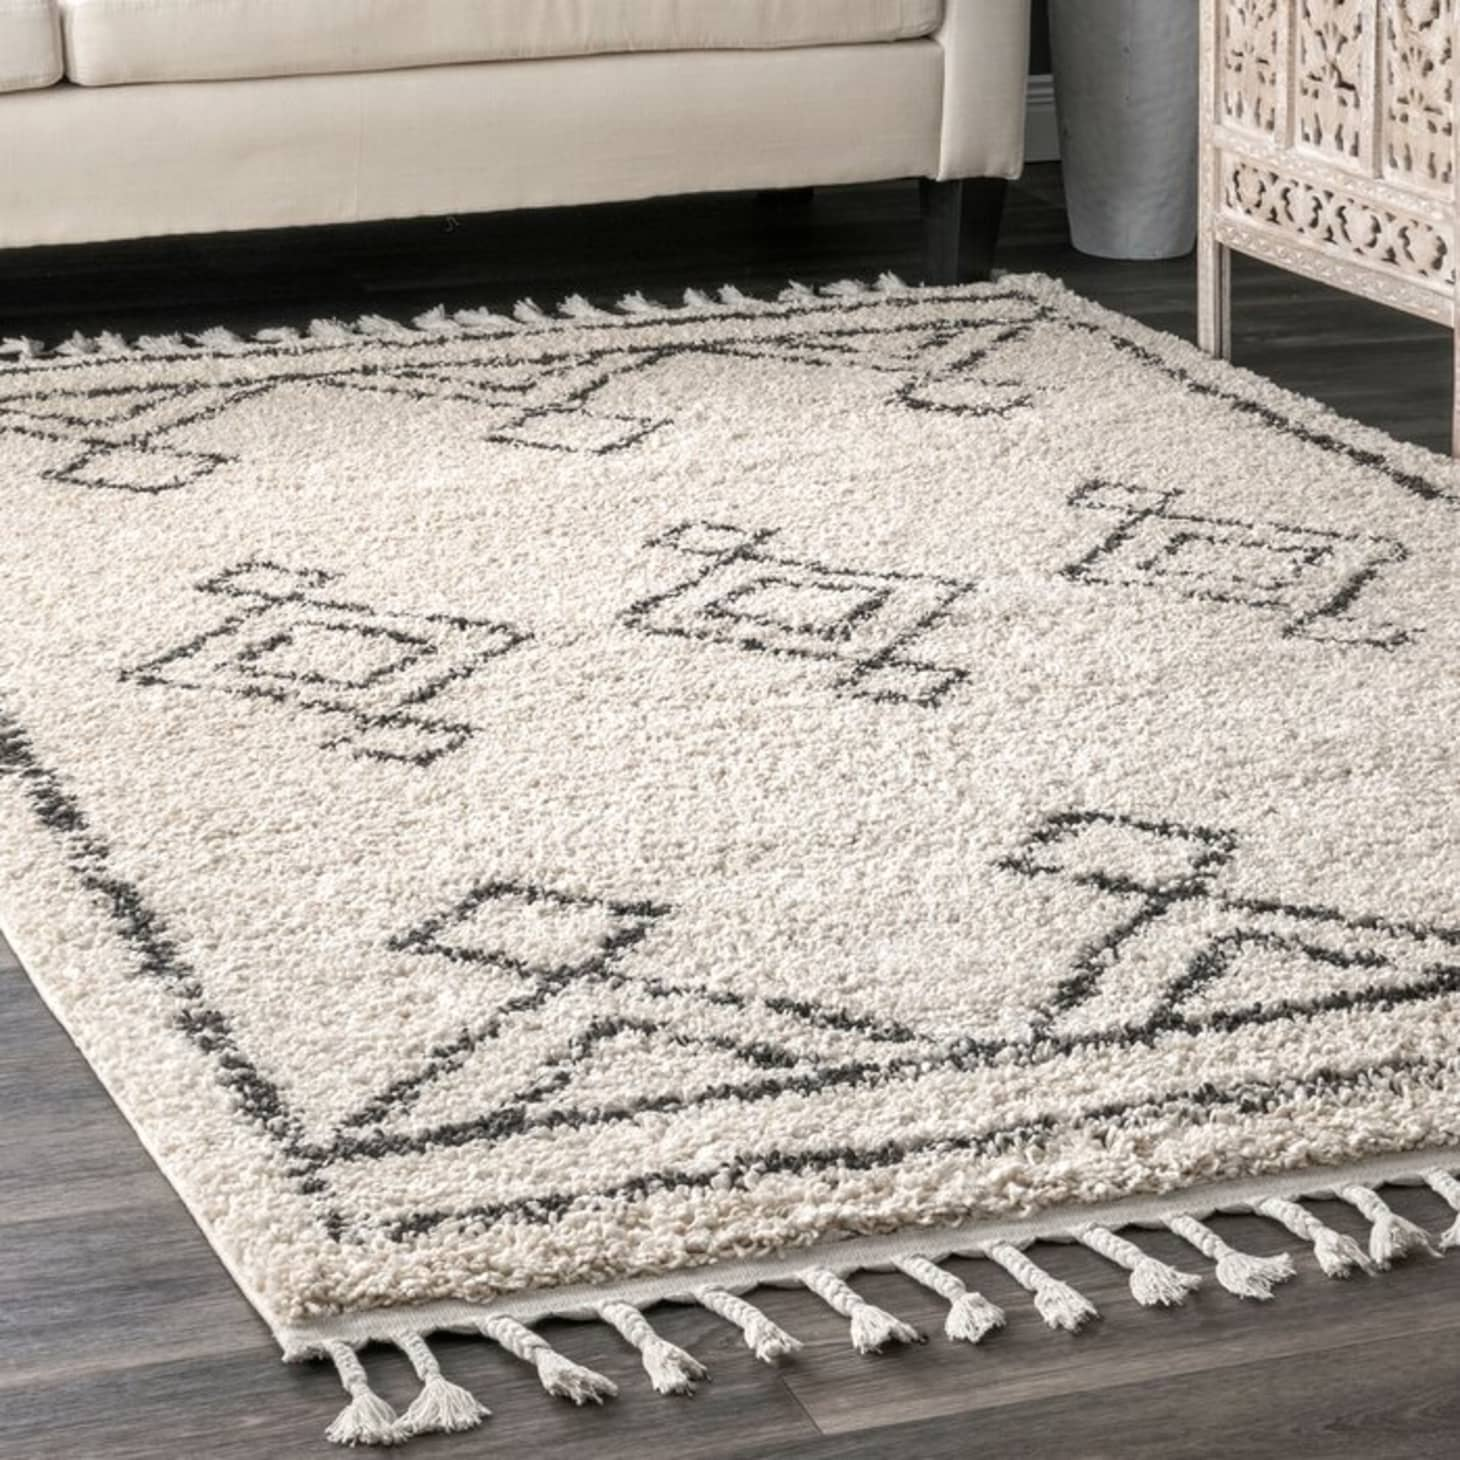 Best Rug Deals - Black Friday and Cyber Monday 2019 ...